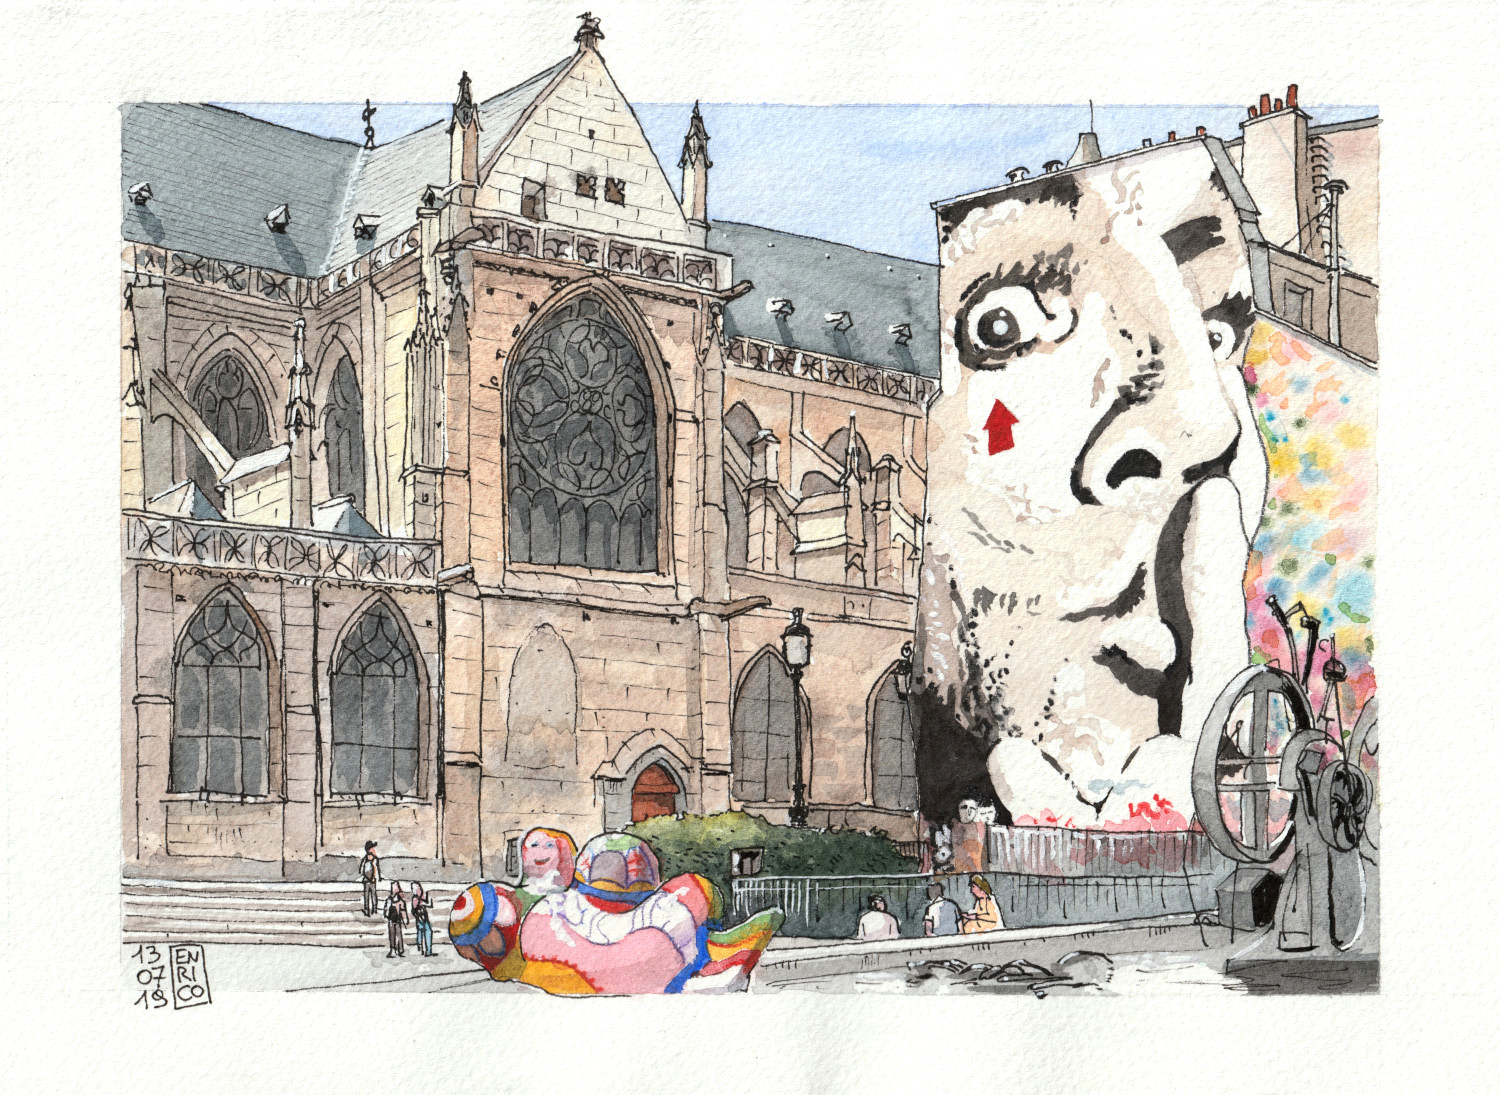 Just beside Centre Pompidou in Paris, there is an amazingly diverse square: the gothic church of Saint-Merri, a big murales with moustacheless Dali', a fountain with Tinguely machines and Niki de Saint Phalle colorful figures. I got to sit and sketch there, while my friends visited the museum.